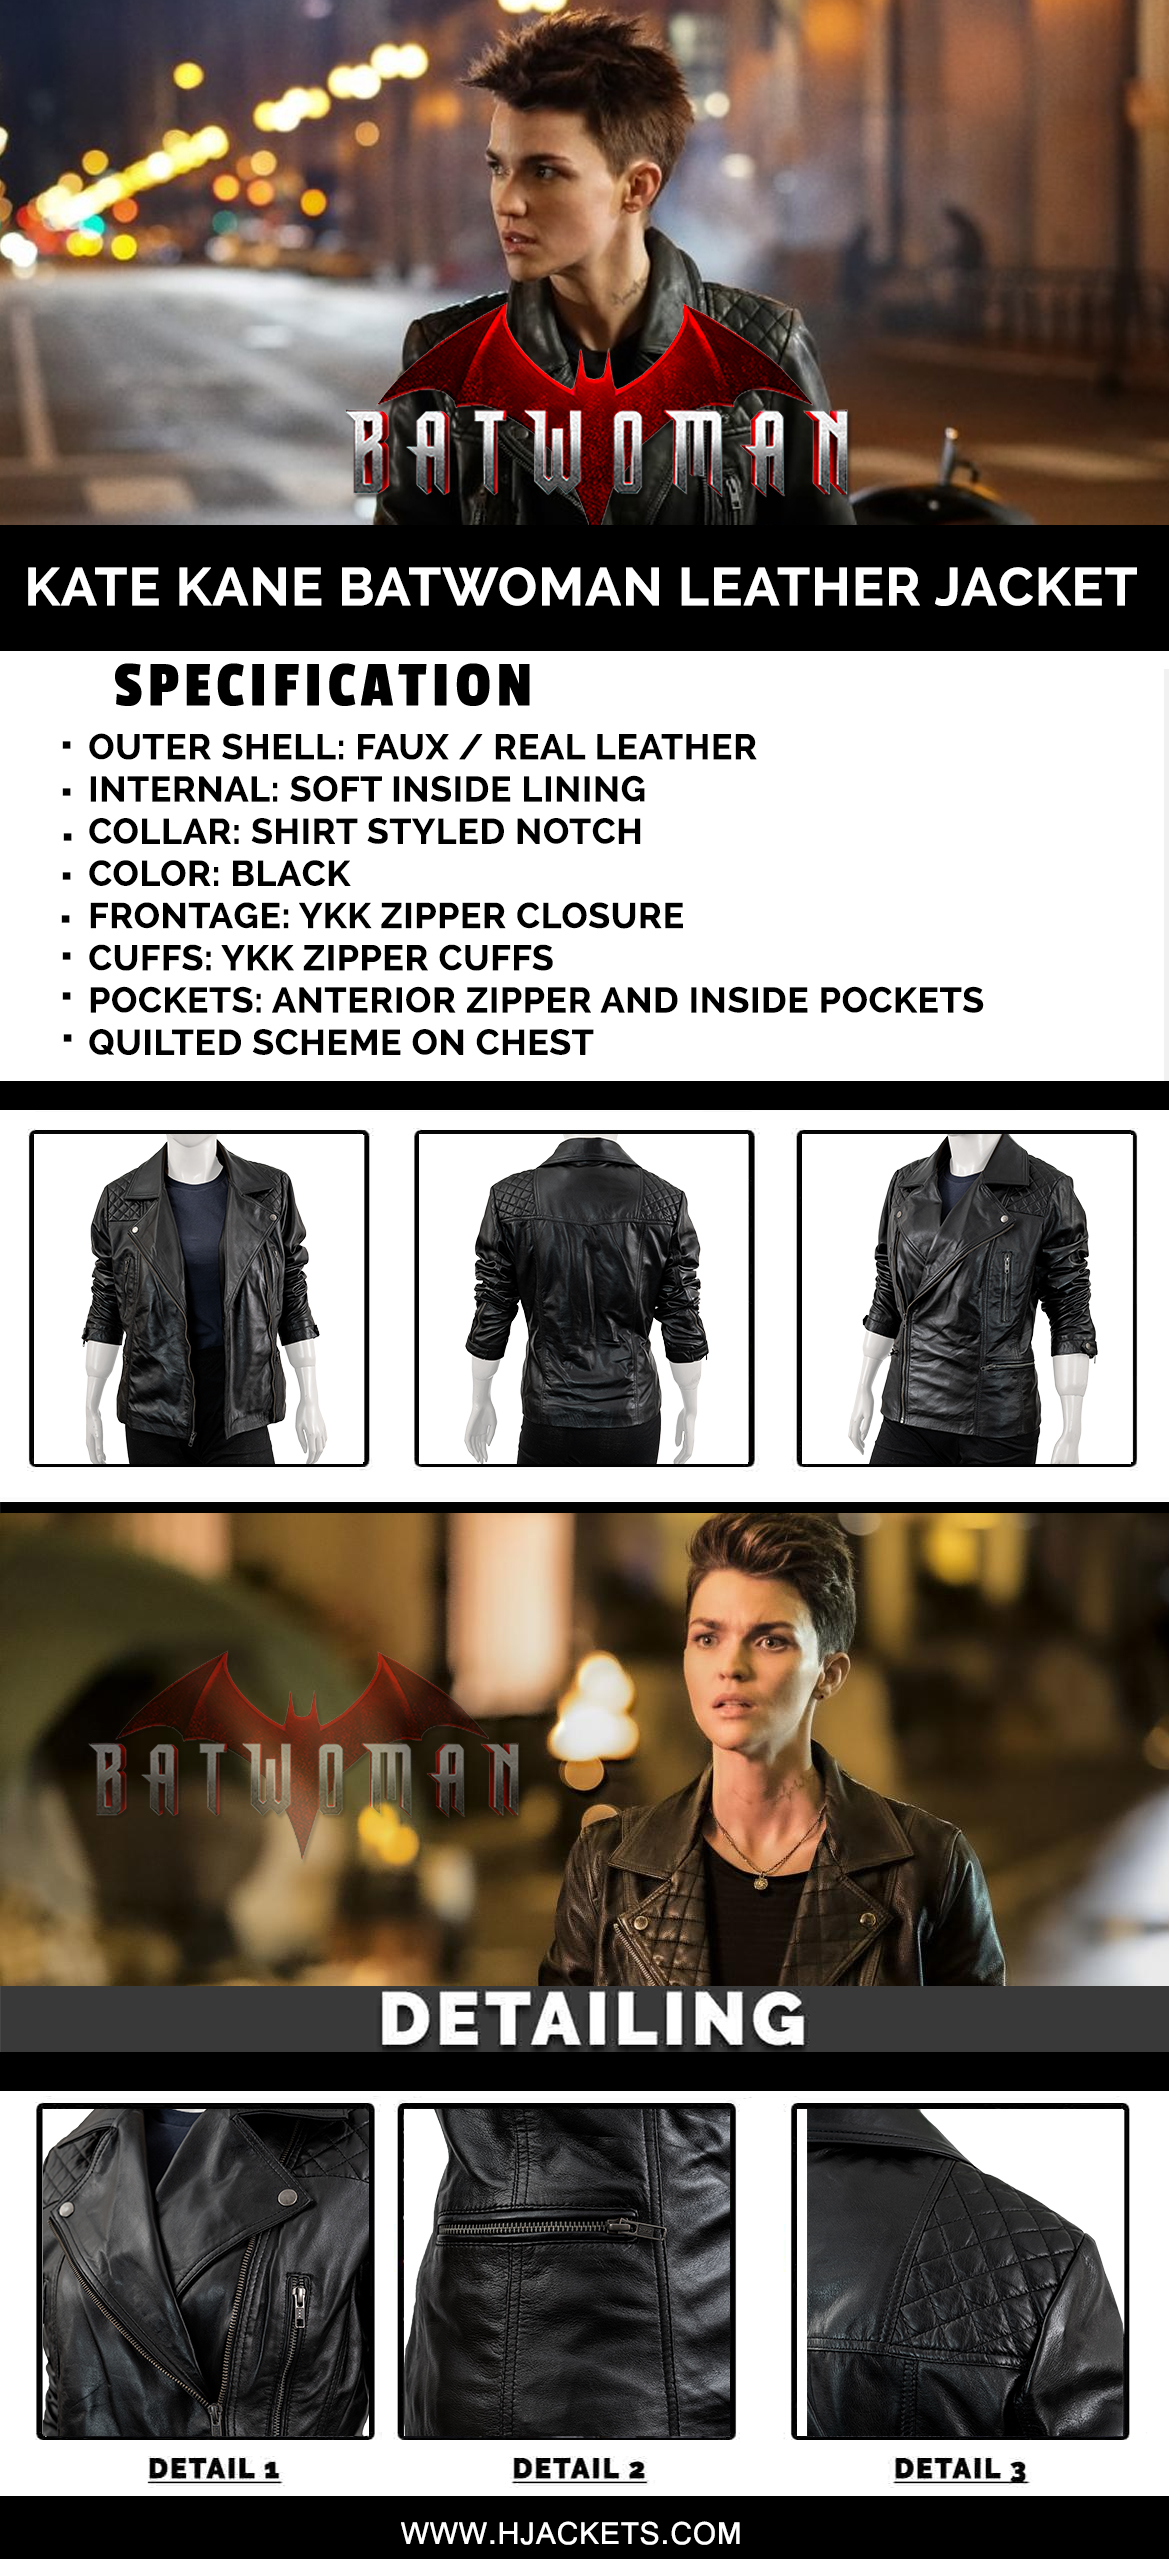 kate kane batwoman jacket infographic